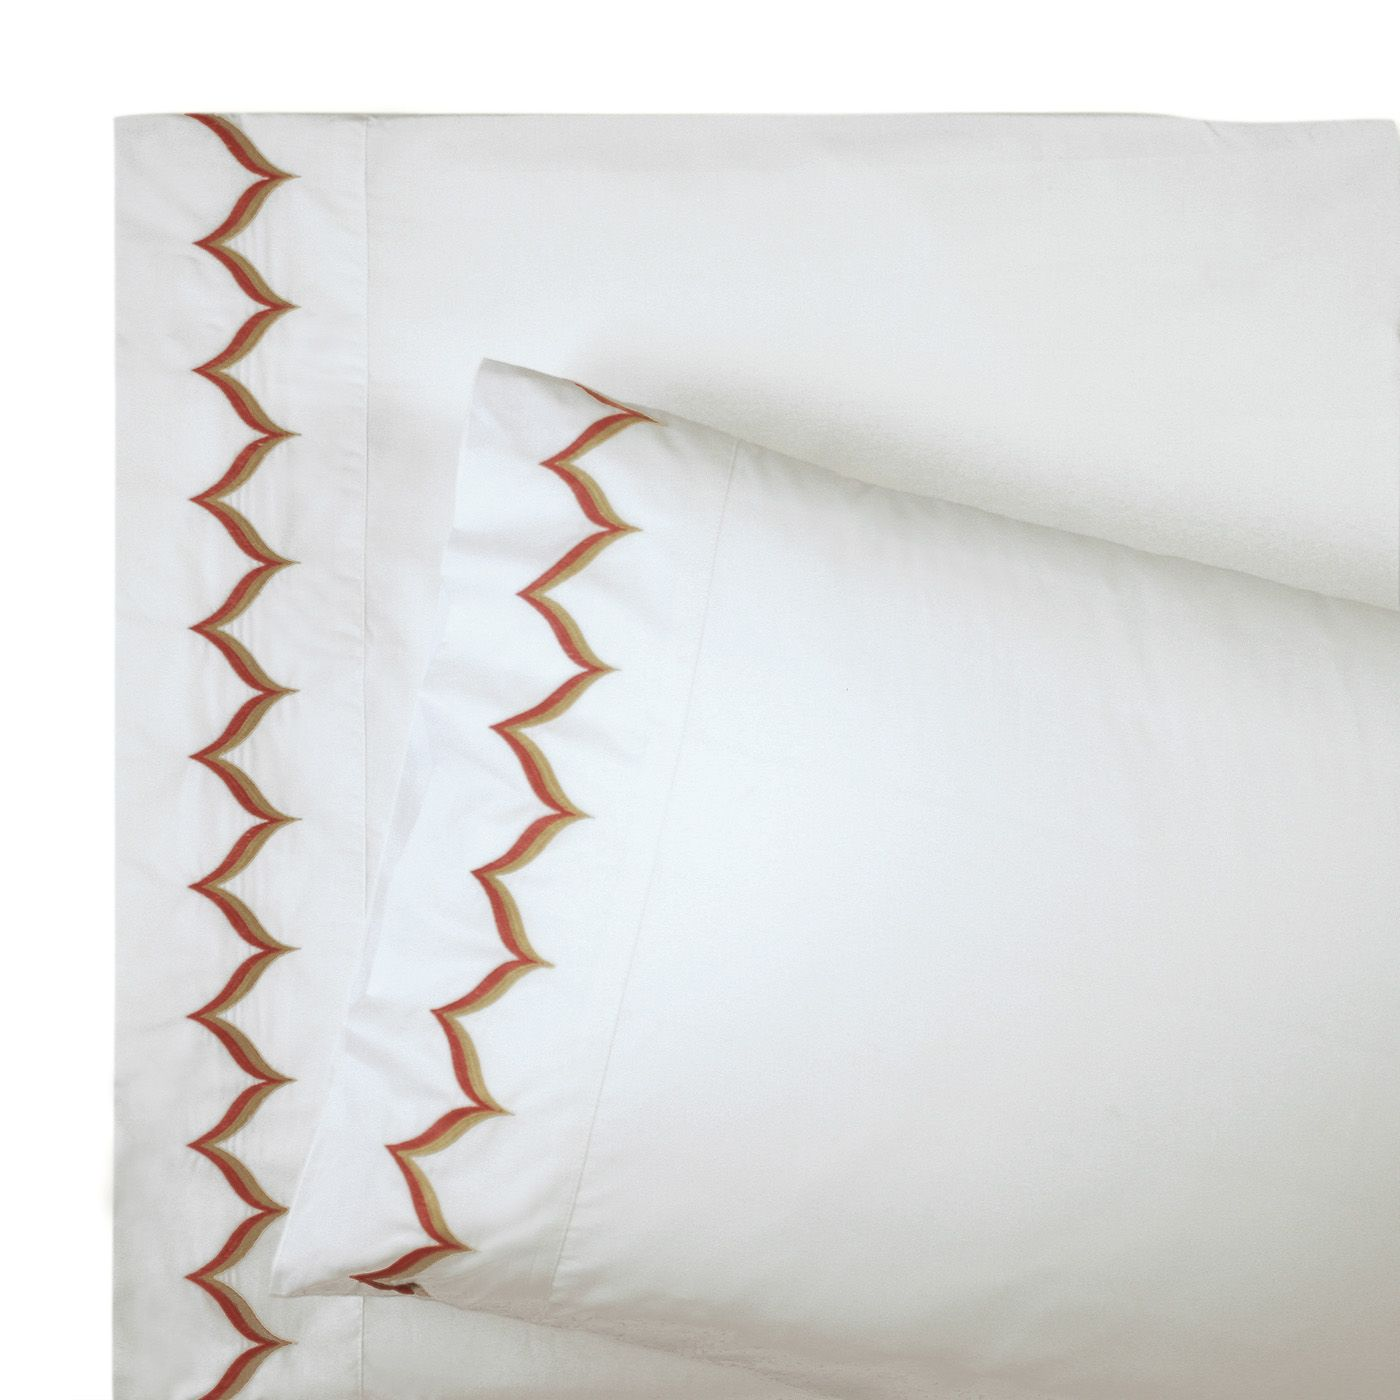 Jonathan Adler Pink Flame Sheet Set, on sale. Love these.